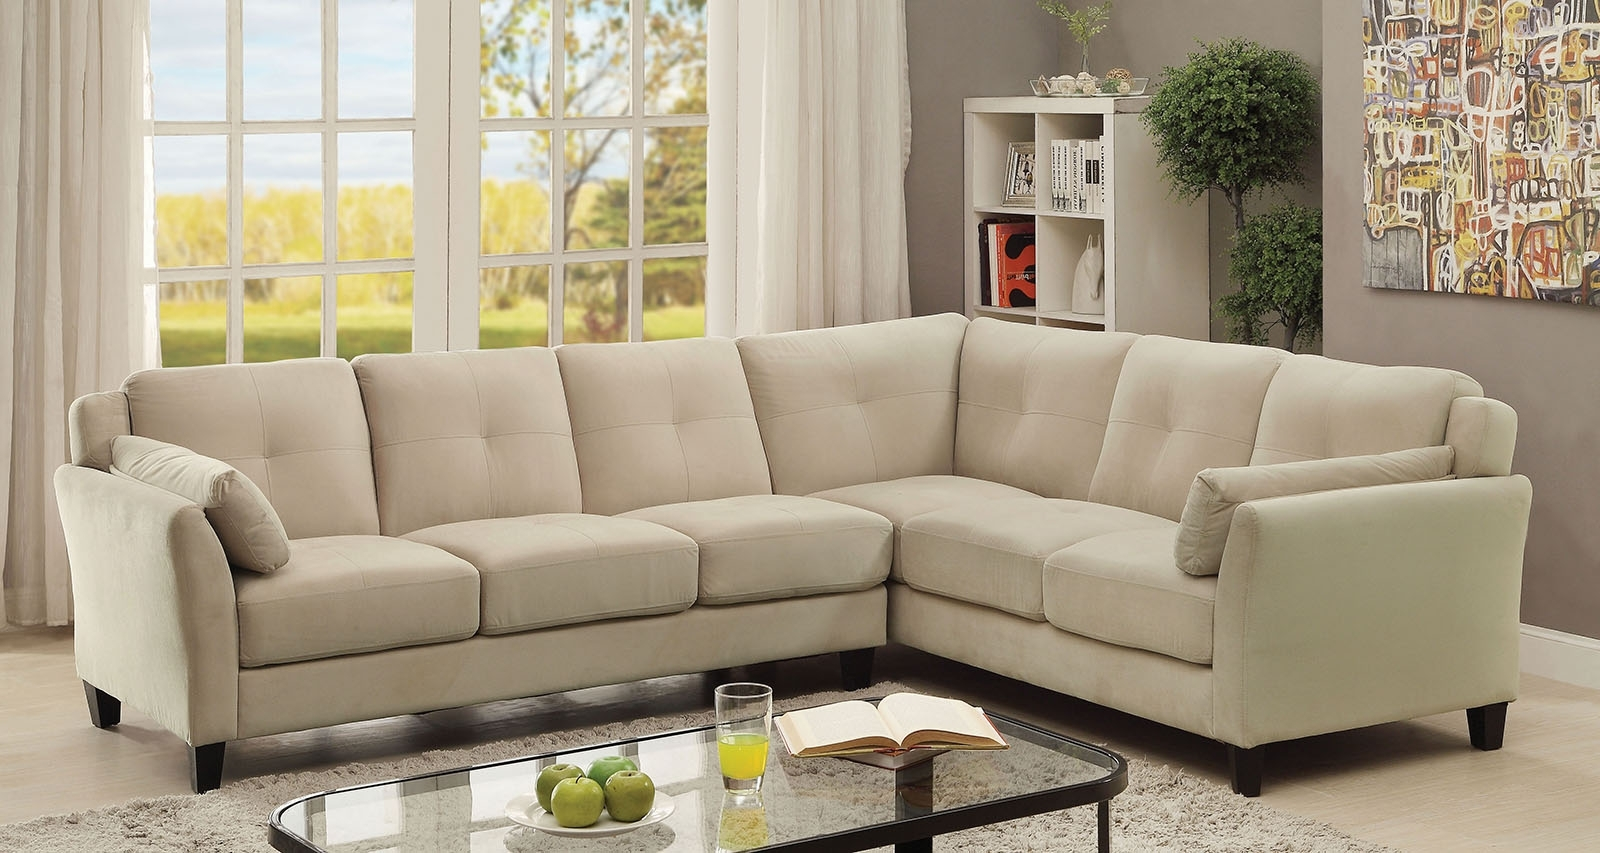 Andrew's Furniture And Mattress In Beige Sectional Sofas (View 2 of 15)